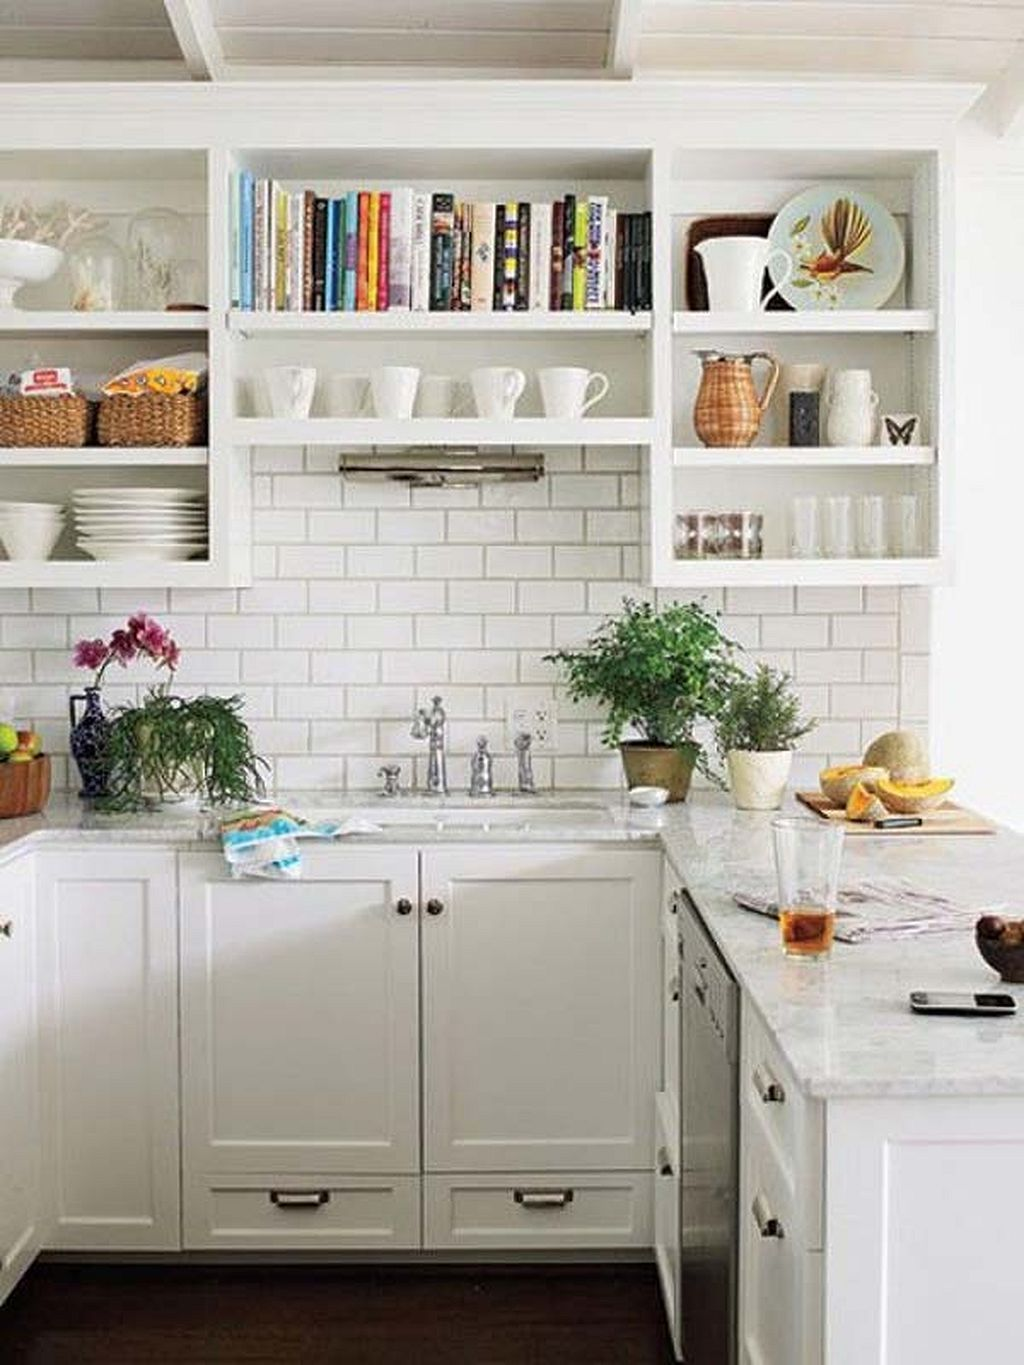 30 Awesome Ushaped Kitchen Designs For Small Spaces  Kitchen Impressive Kitchen Design Small Spaces Design Inspiration